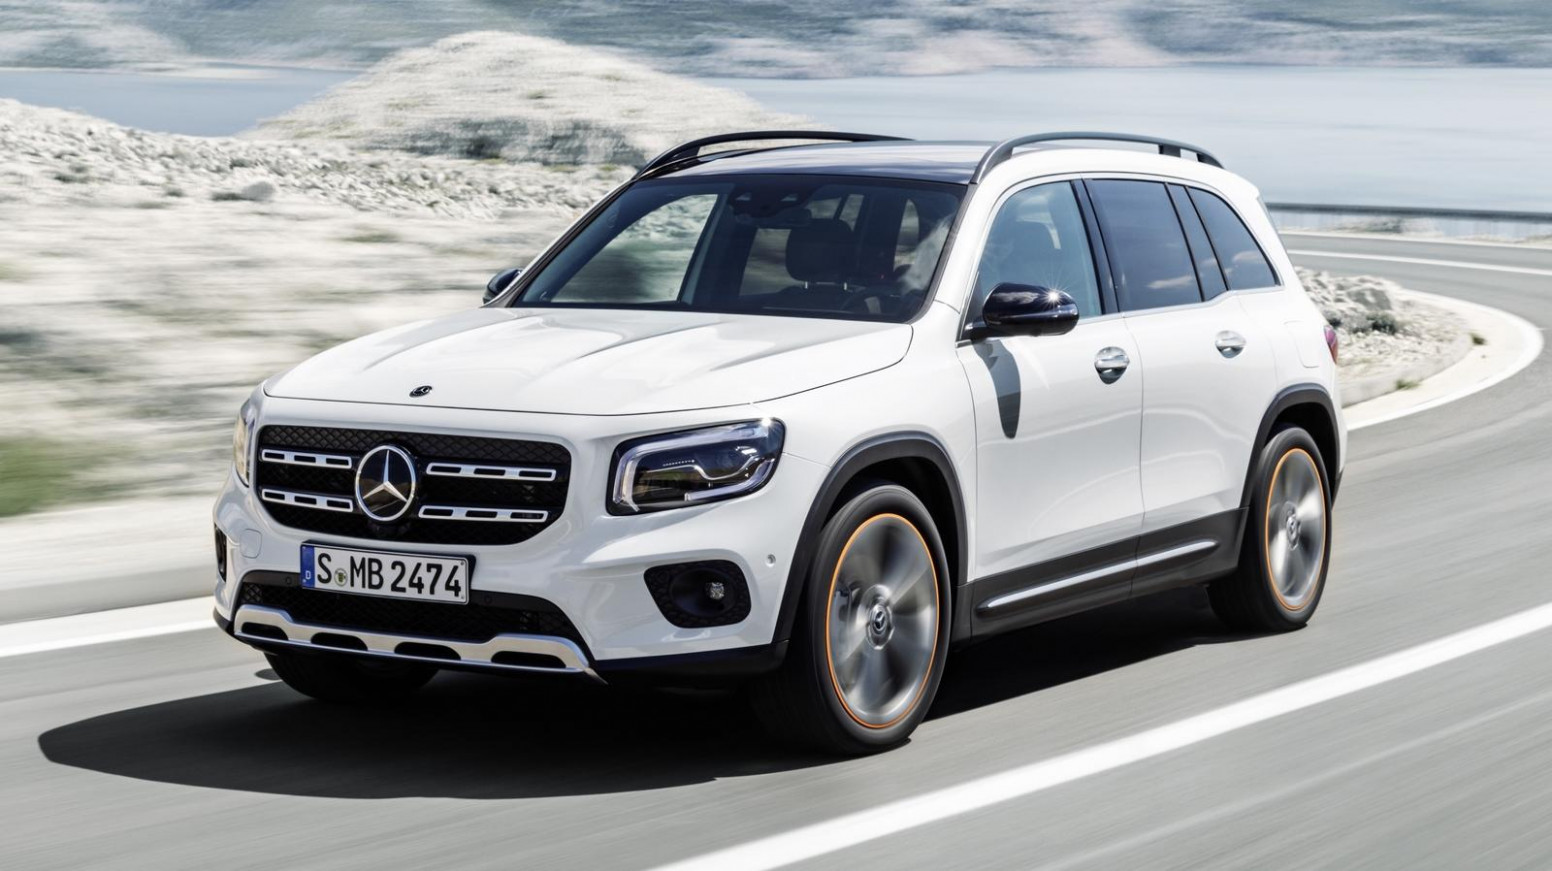 8 Mercedes Benz GLB Launch & Price In India | Autoshouts - mercedes india price 2020